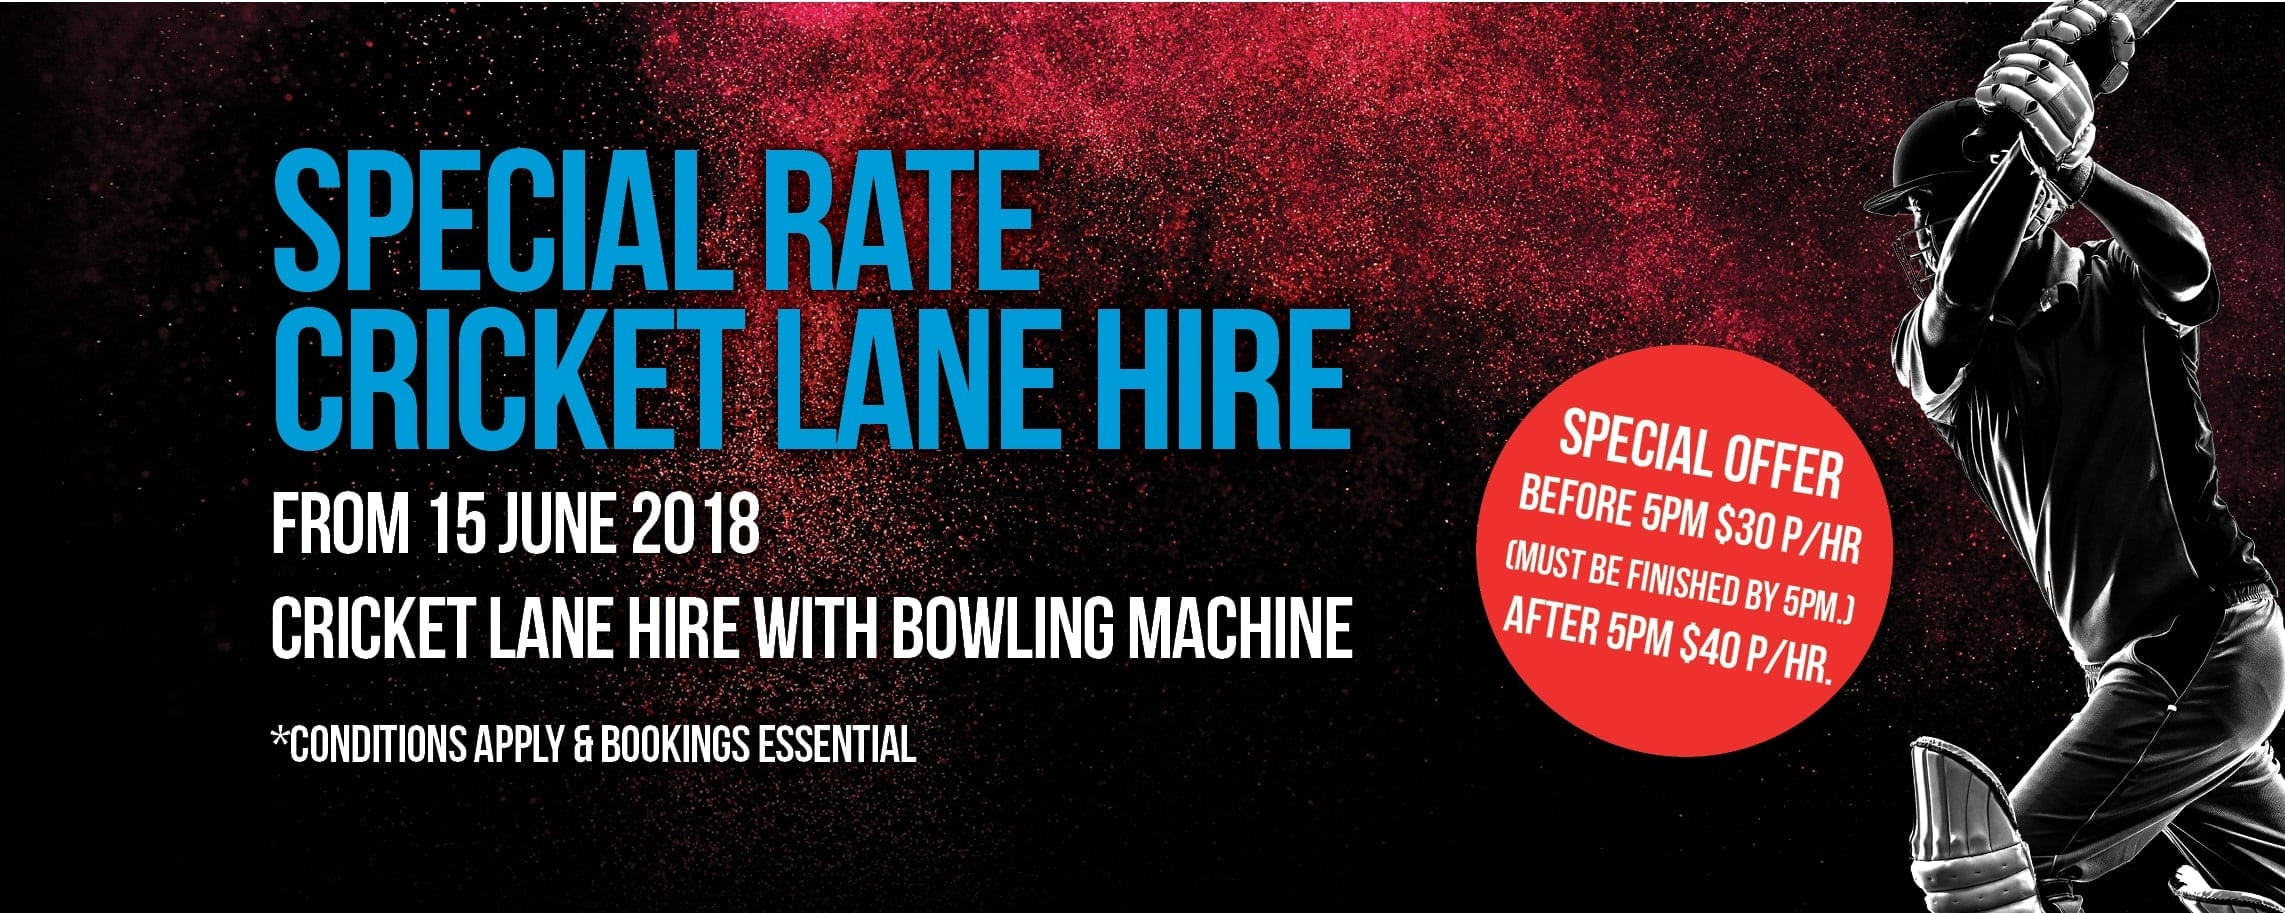 Special Rate Cricket Lane Hire